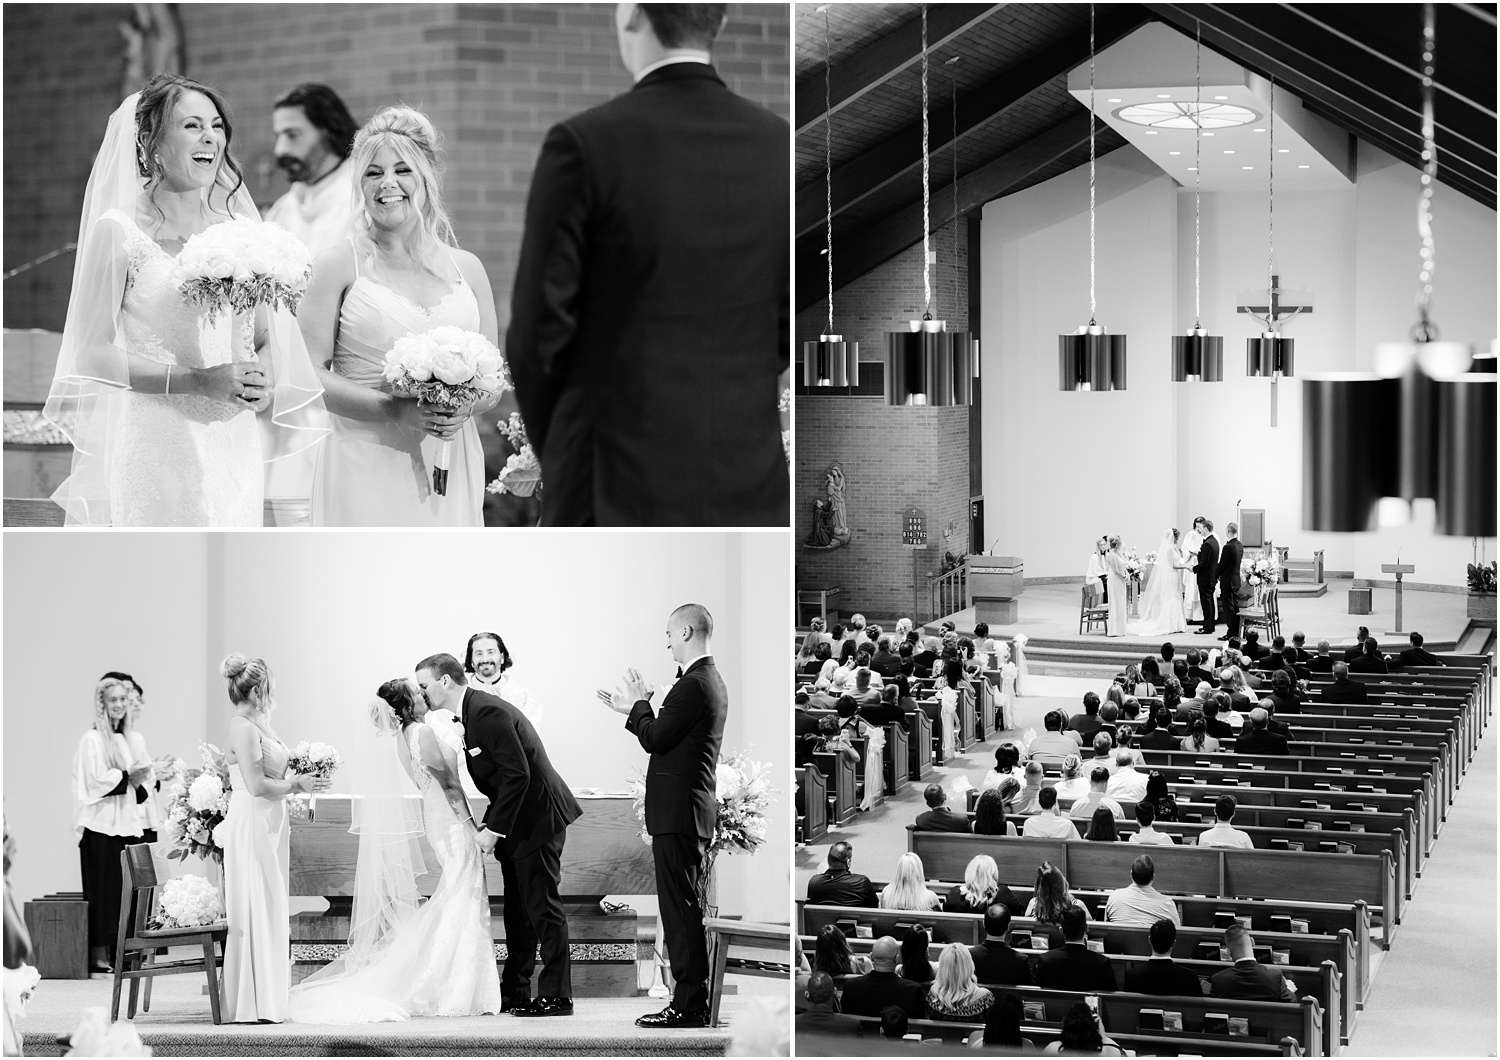 Black and white wedding ceremony photos at St. Dominic's in Brick